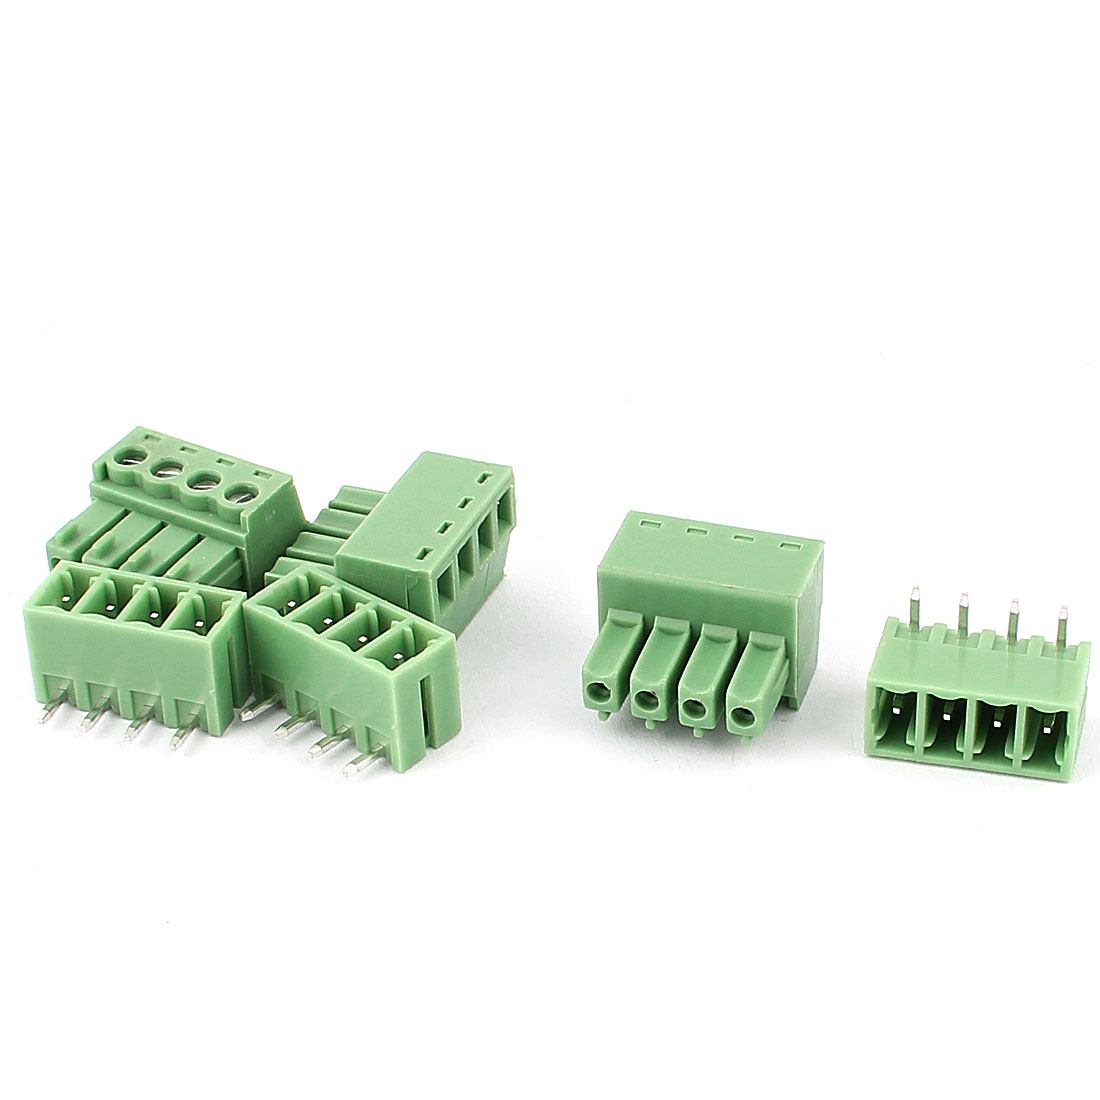 3pcs 3.81mm Pitch 4 Pins AC300V 8A Terminal Blocks Green